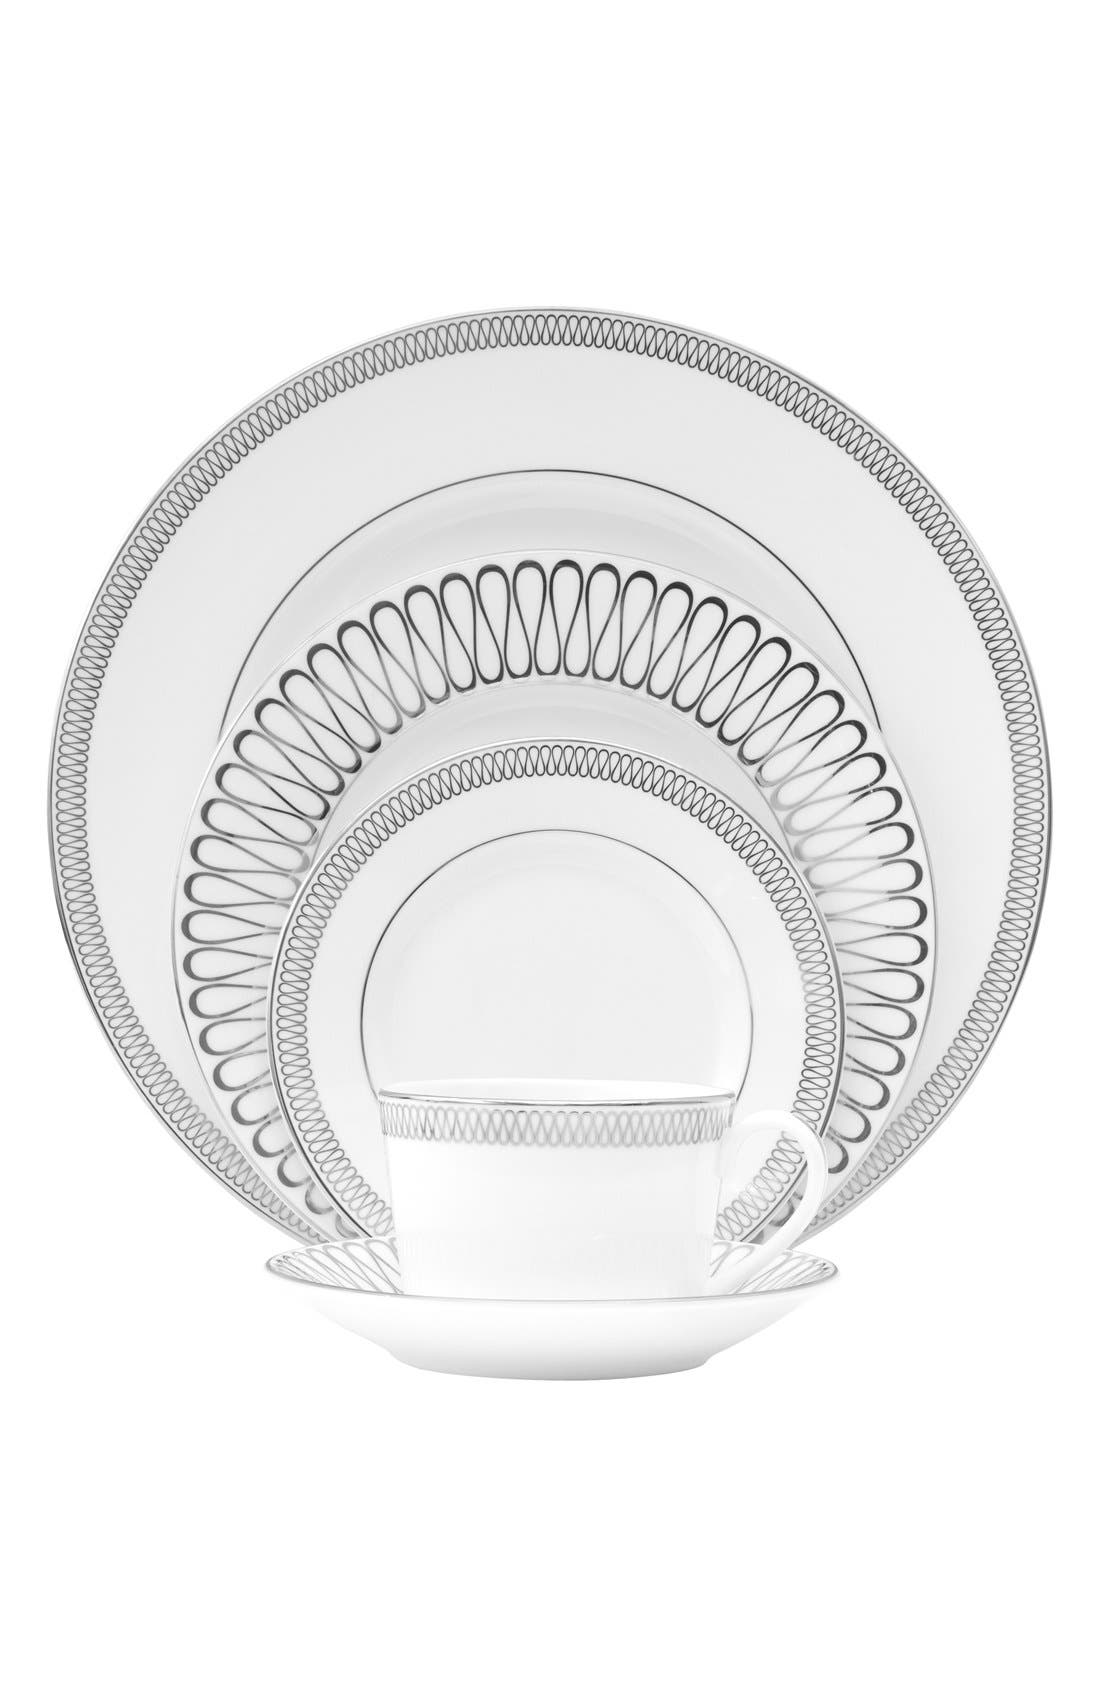 MoniqueLhuillierWaterford 'Opulence' 5-Piece China Place Setting,                             Main thumbnail 1, color,                             Bone